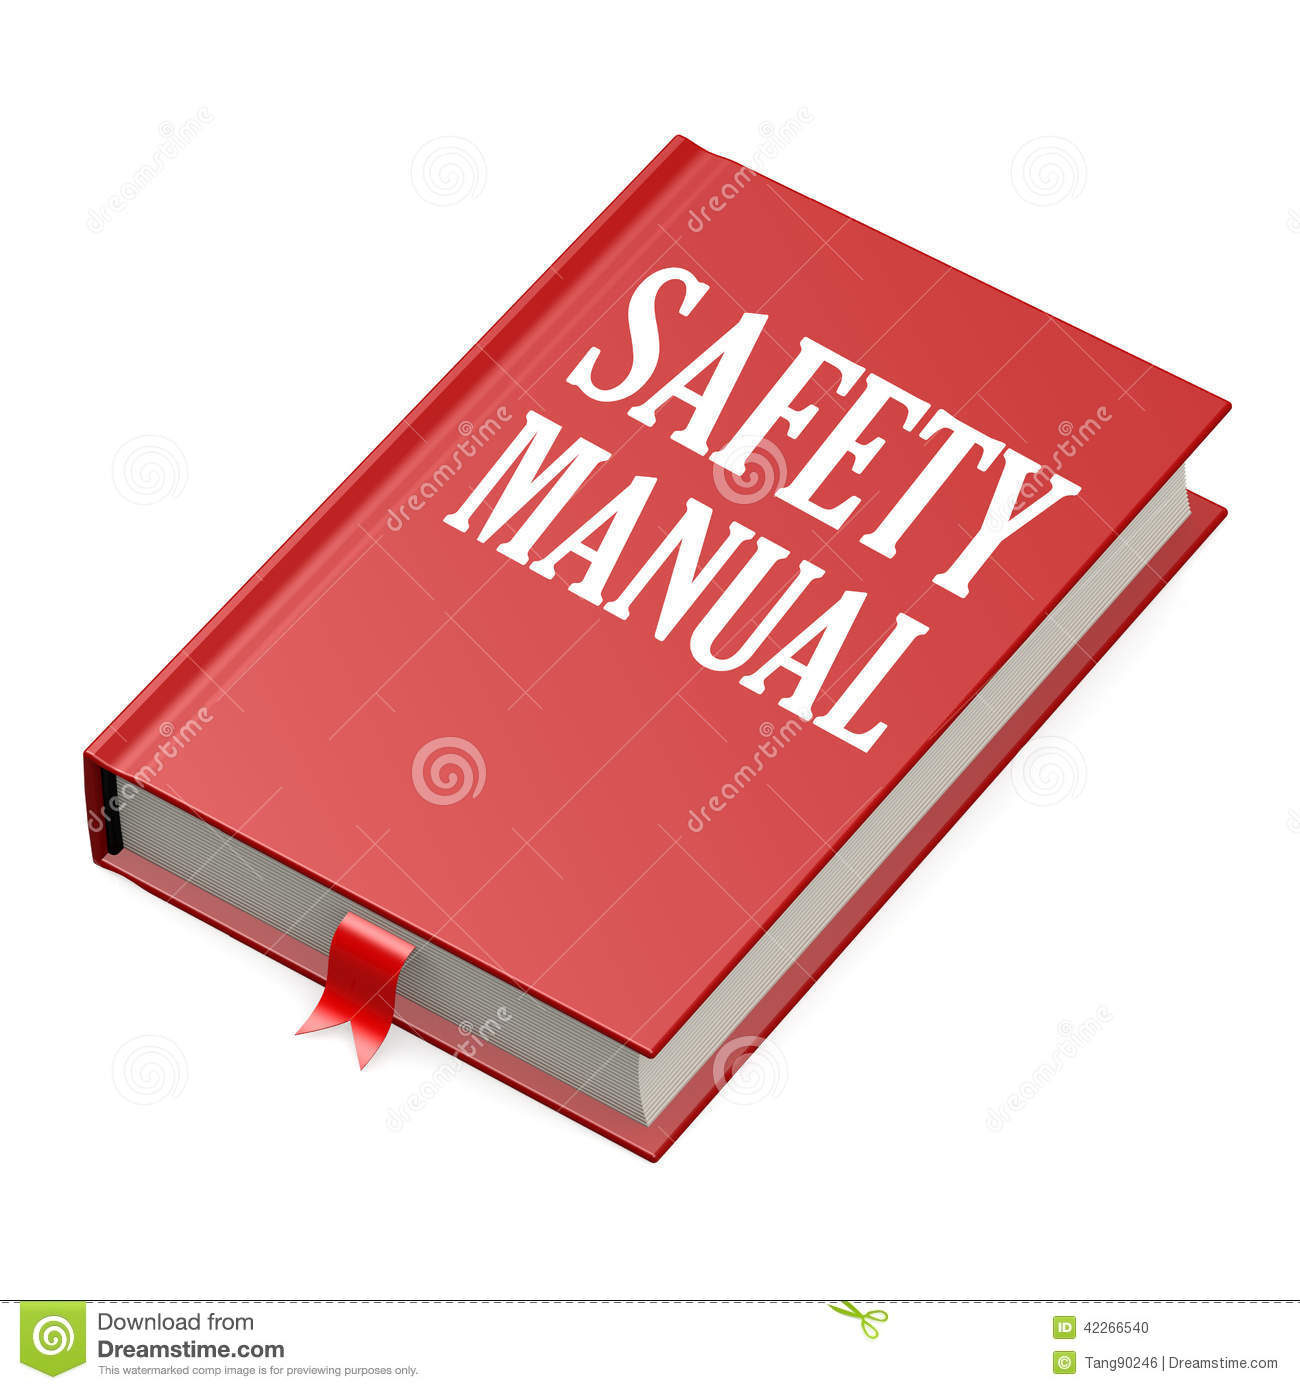 isolated red book with safety manual stock illustration book clip art free download book clipart transparent